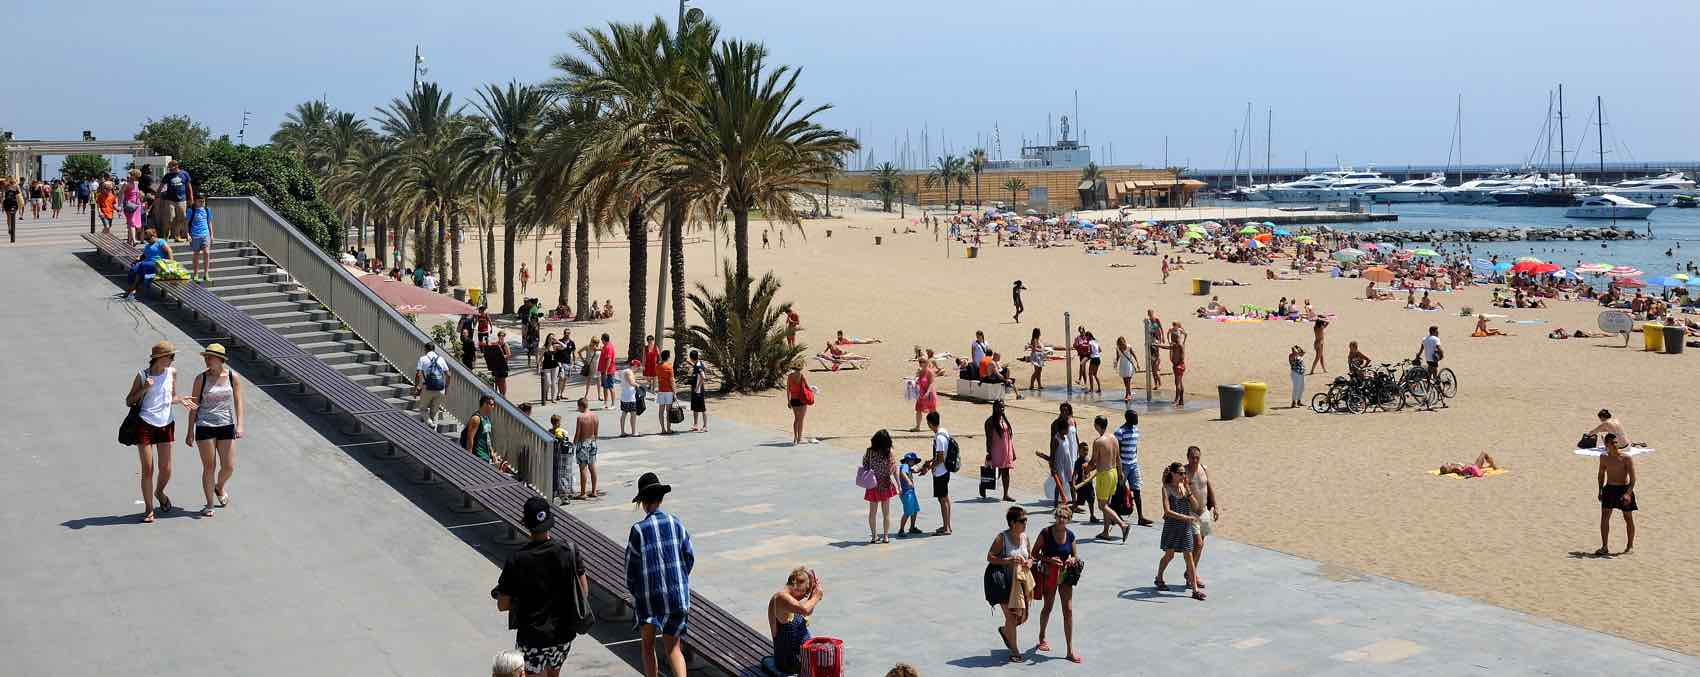 Every day is a beach day - on Malagueta in Barcelona